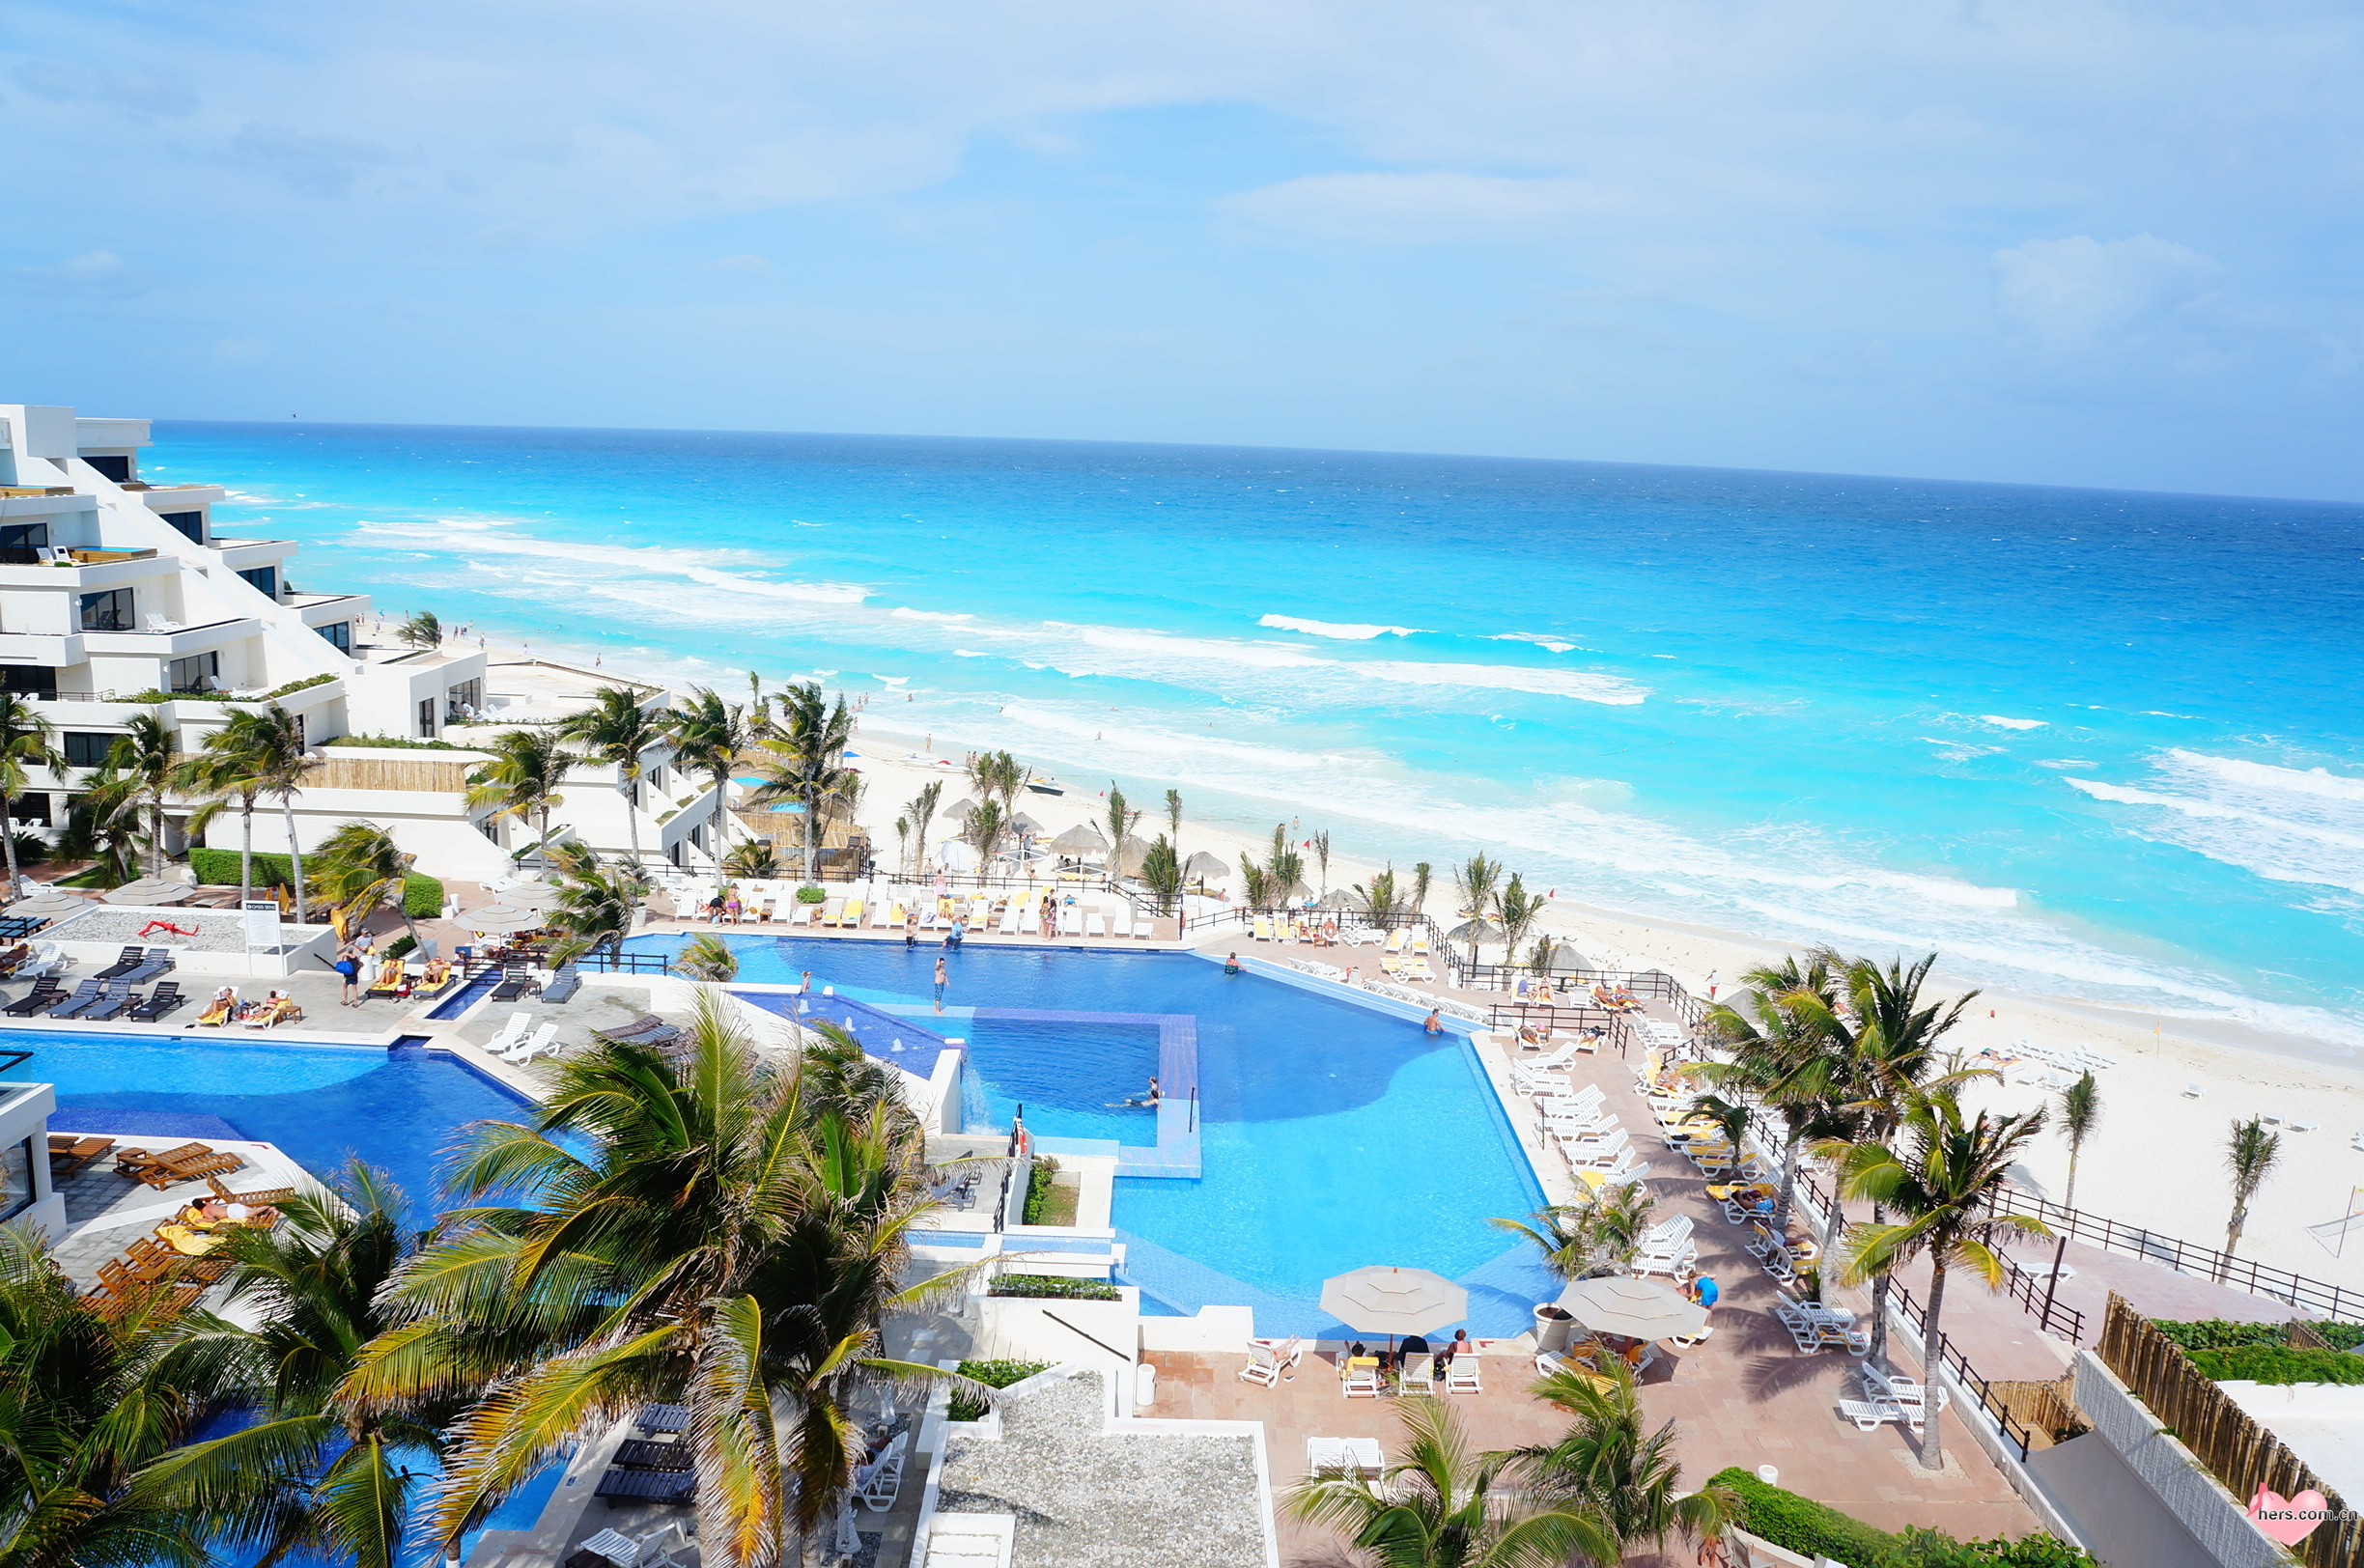 Popular Honeymoon Destinations – Cancun, Mexico